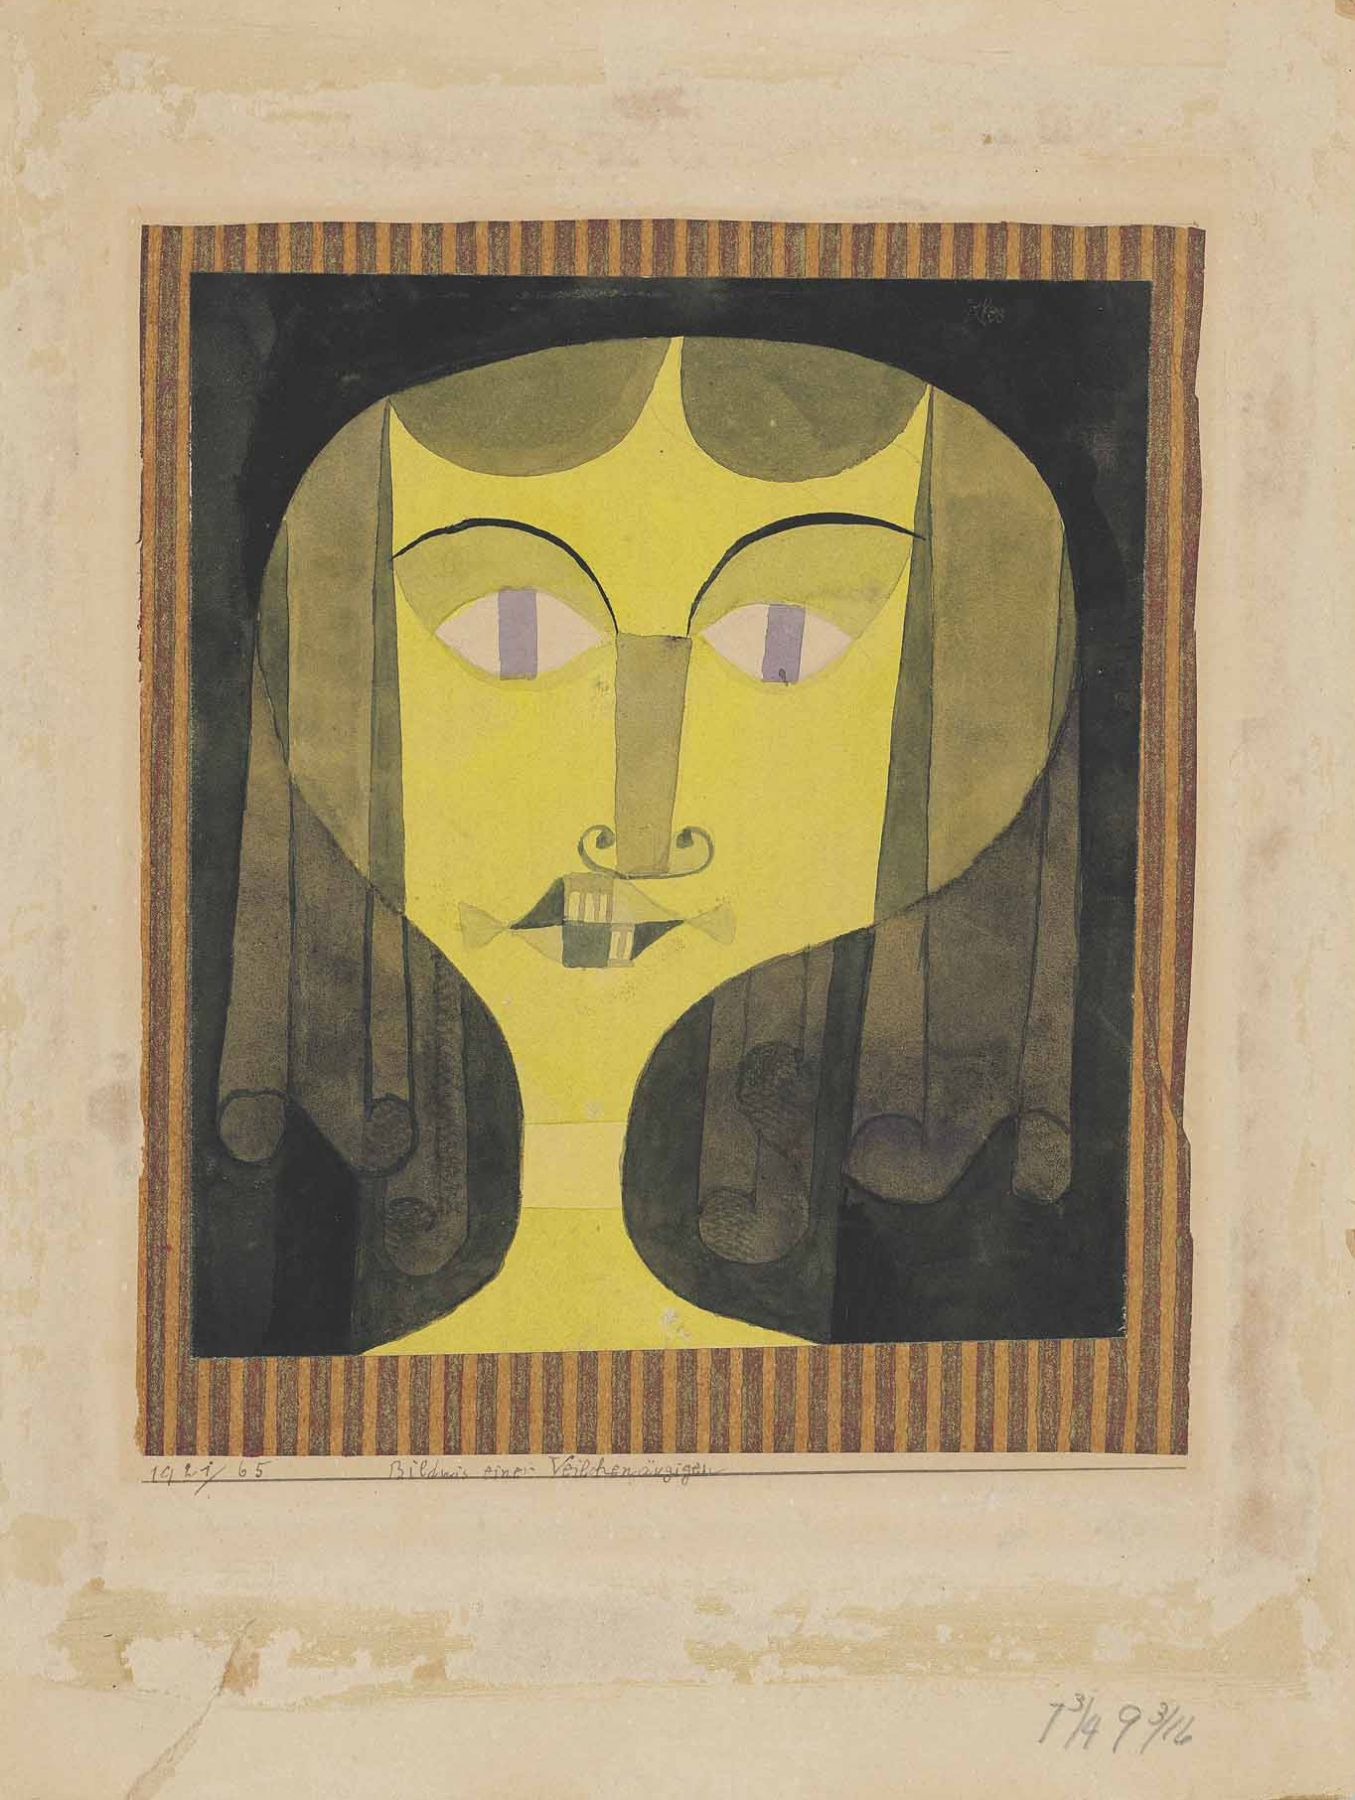 Paul Klee (1879–1940), Bildnis einer Veilchenaugigen, 1921–1921, watercolour and brush and ink over pencil on paper laid down on tissue paper, laid down on the artist's mount, 22.2 x 19.1 cm / 8.66 x 7.48 in.